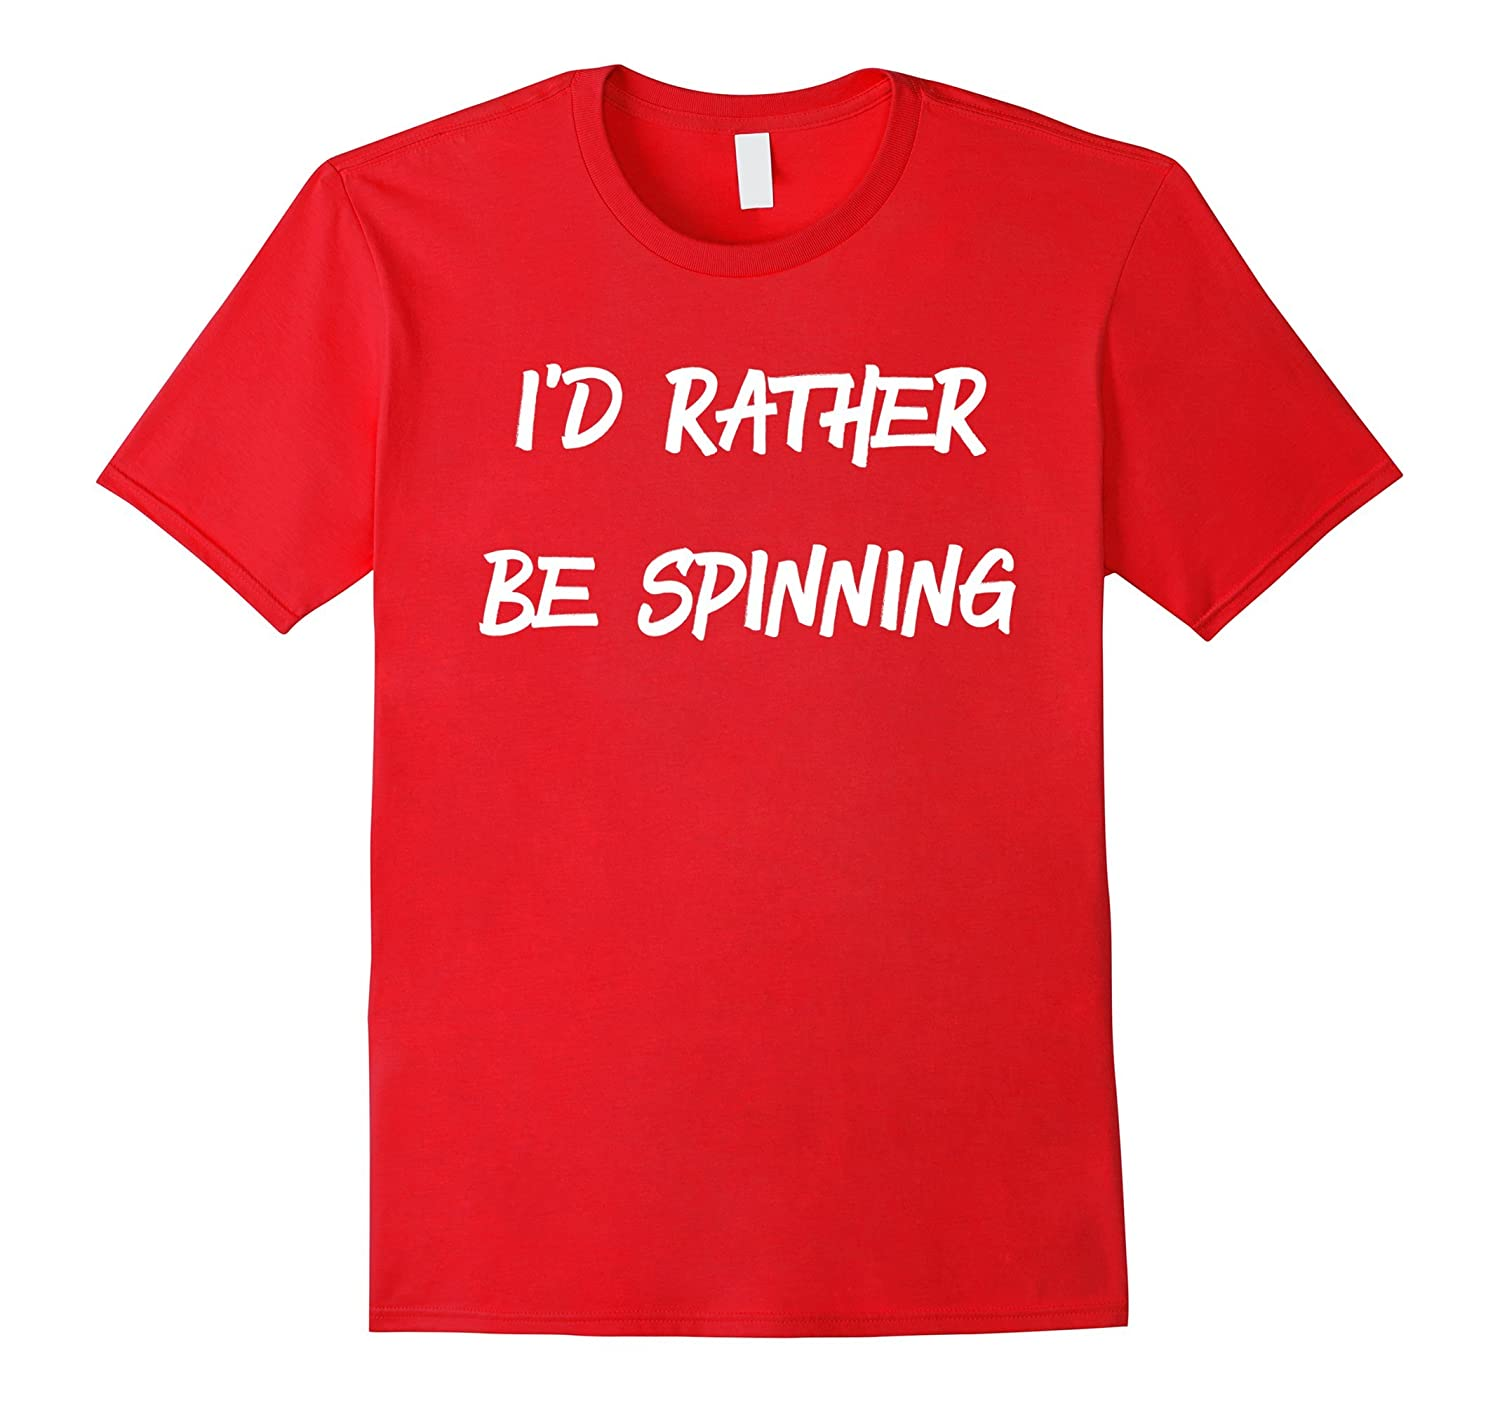 Id rather be spinning shirt Spinner t shirt-TD